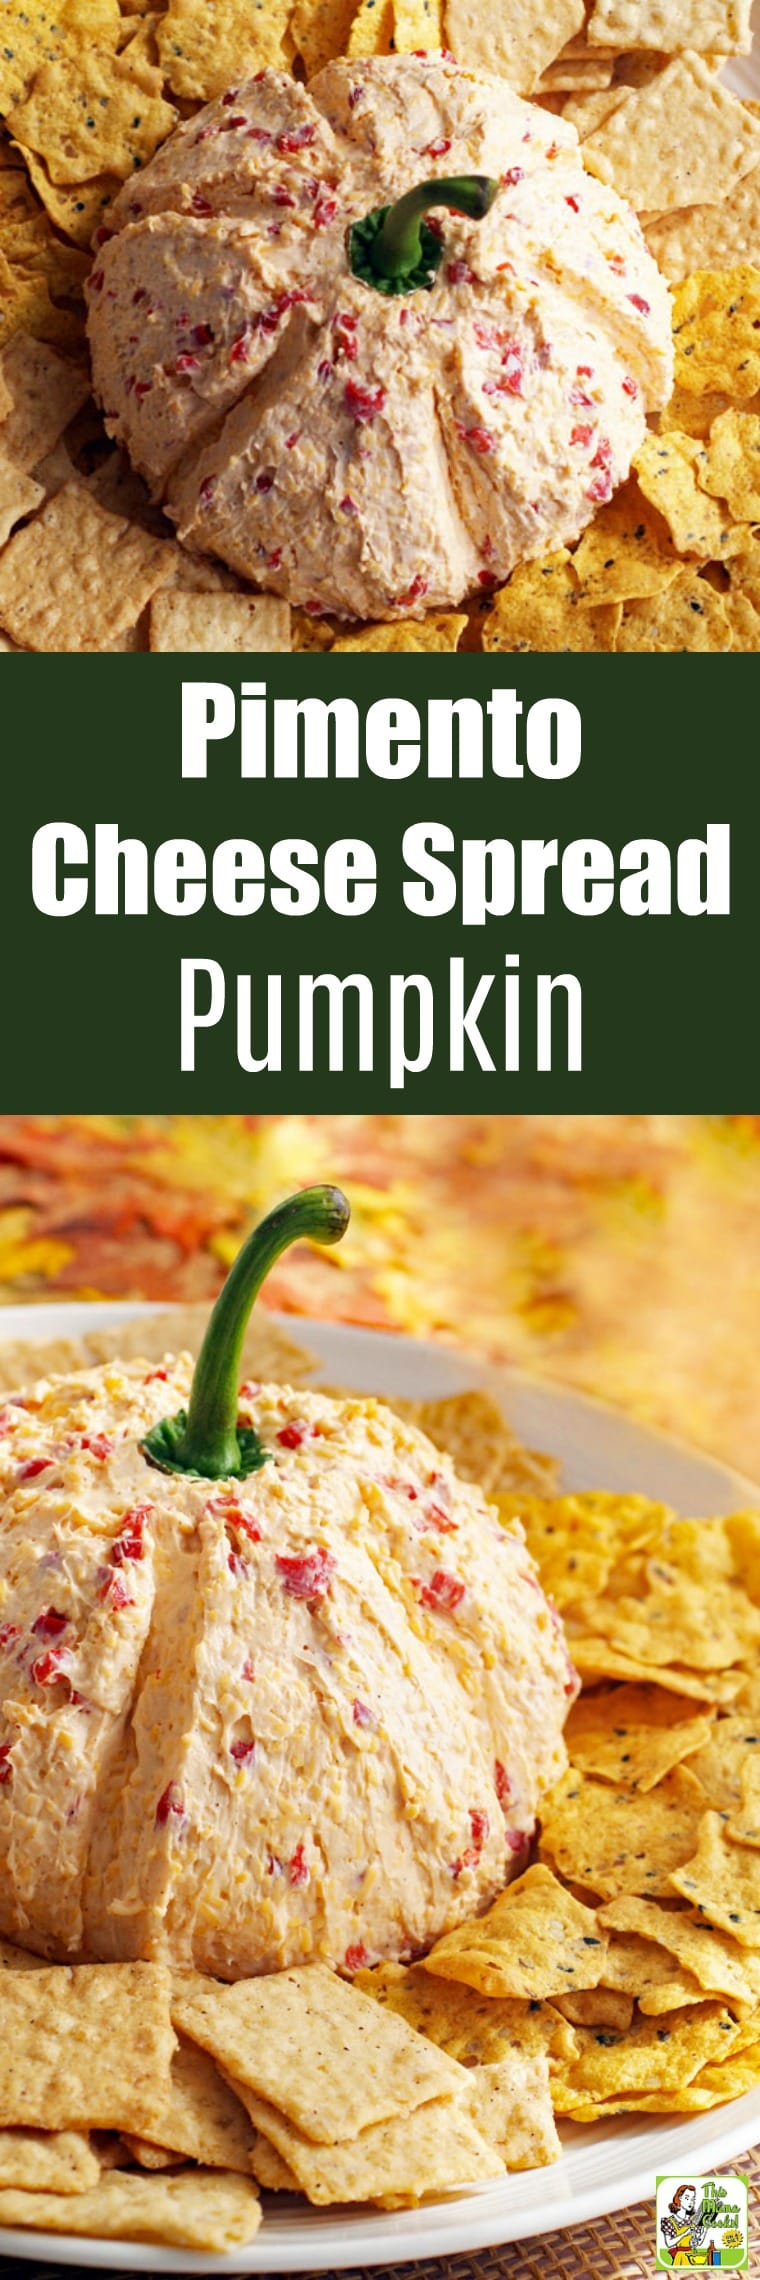 Make this Pimento Cheese Spread Recipe into a Pumpkin